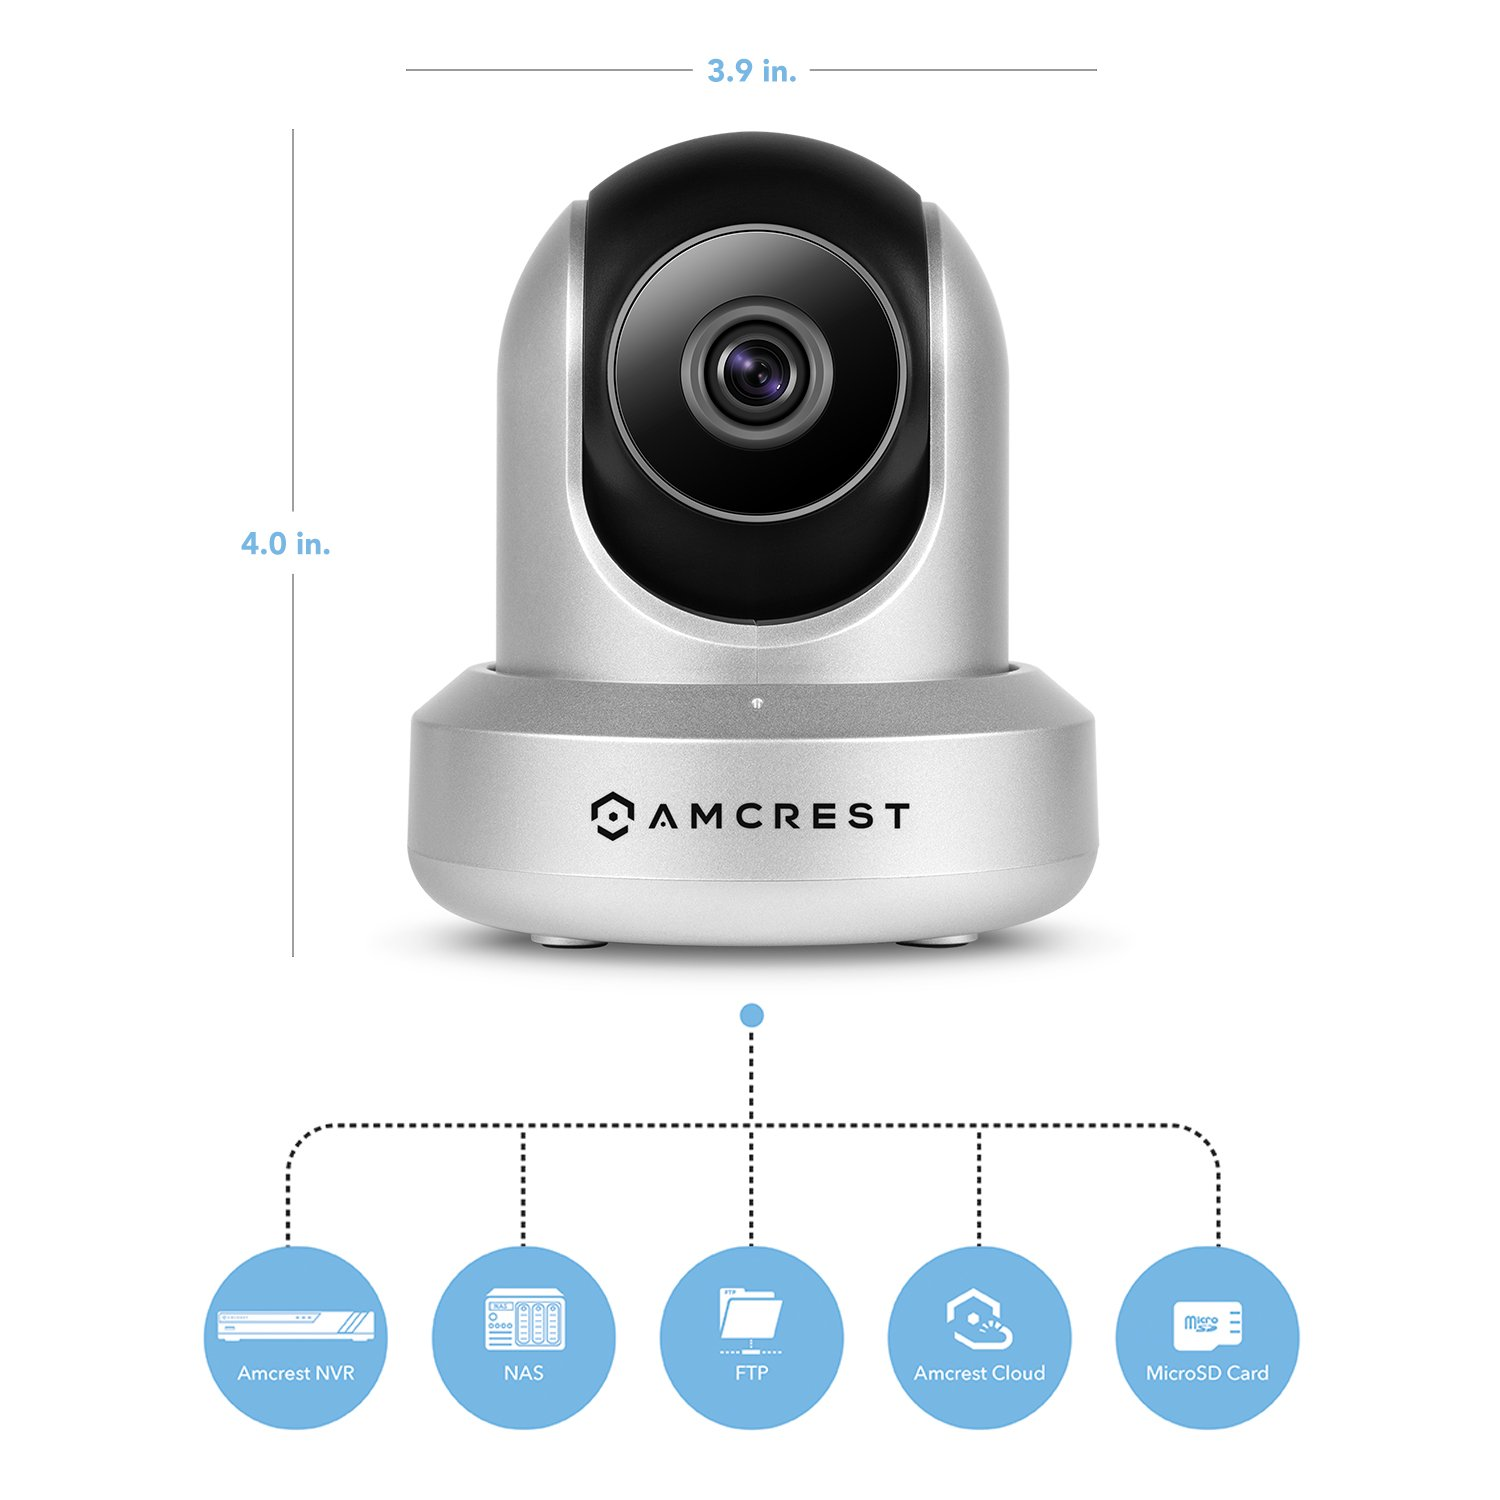 Amcrest HDSeries 720P WiFi Wireless IP Security Surveillance Camera System IPM-721S (Silver), Works with Alexa